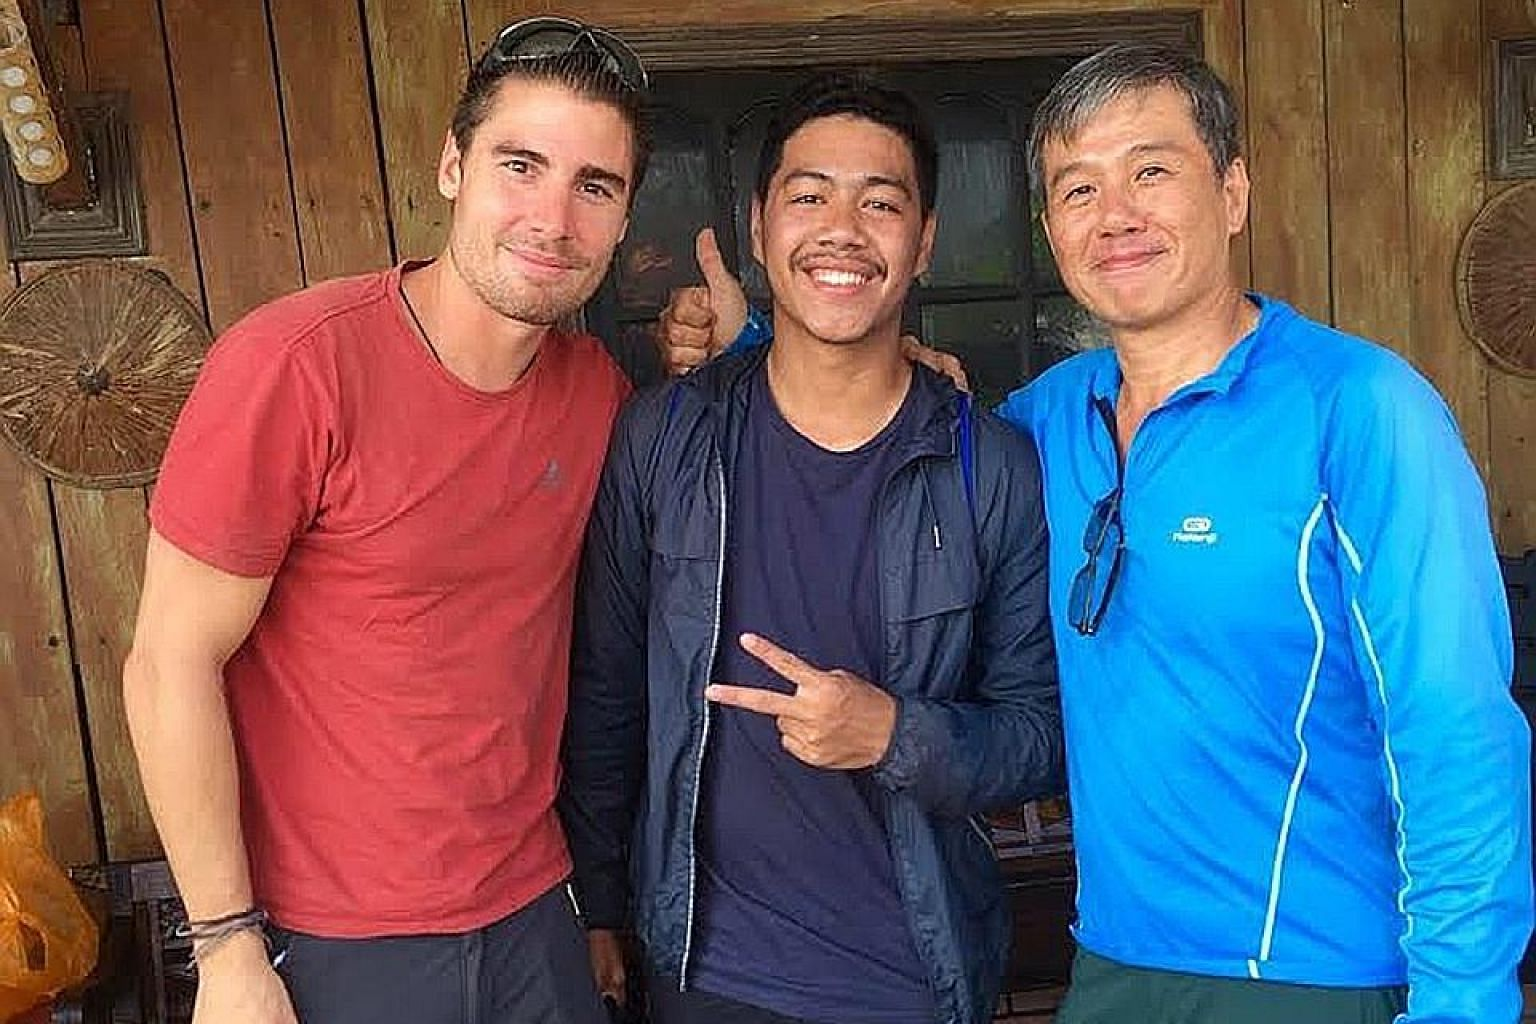 (From left) Mr Francois de Neuville with Mr Gleen Mononutu, who died in the Palu quake, and Mr Ng Kok Choong, whose body was found on Tuesday. The trio called themselves The Happy Flyers.